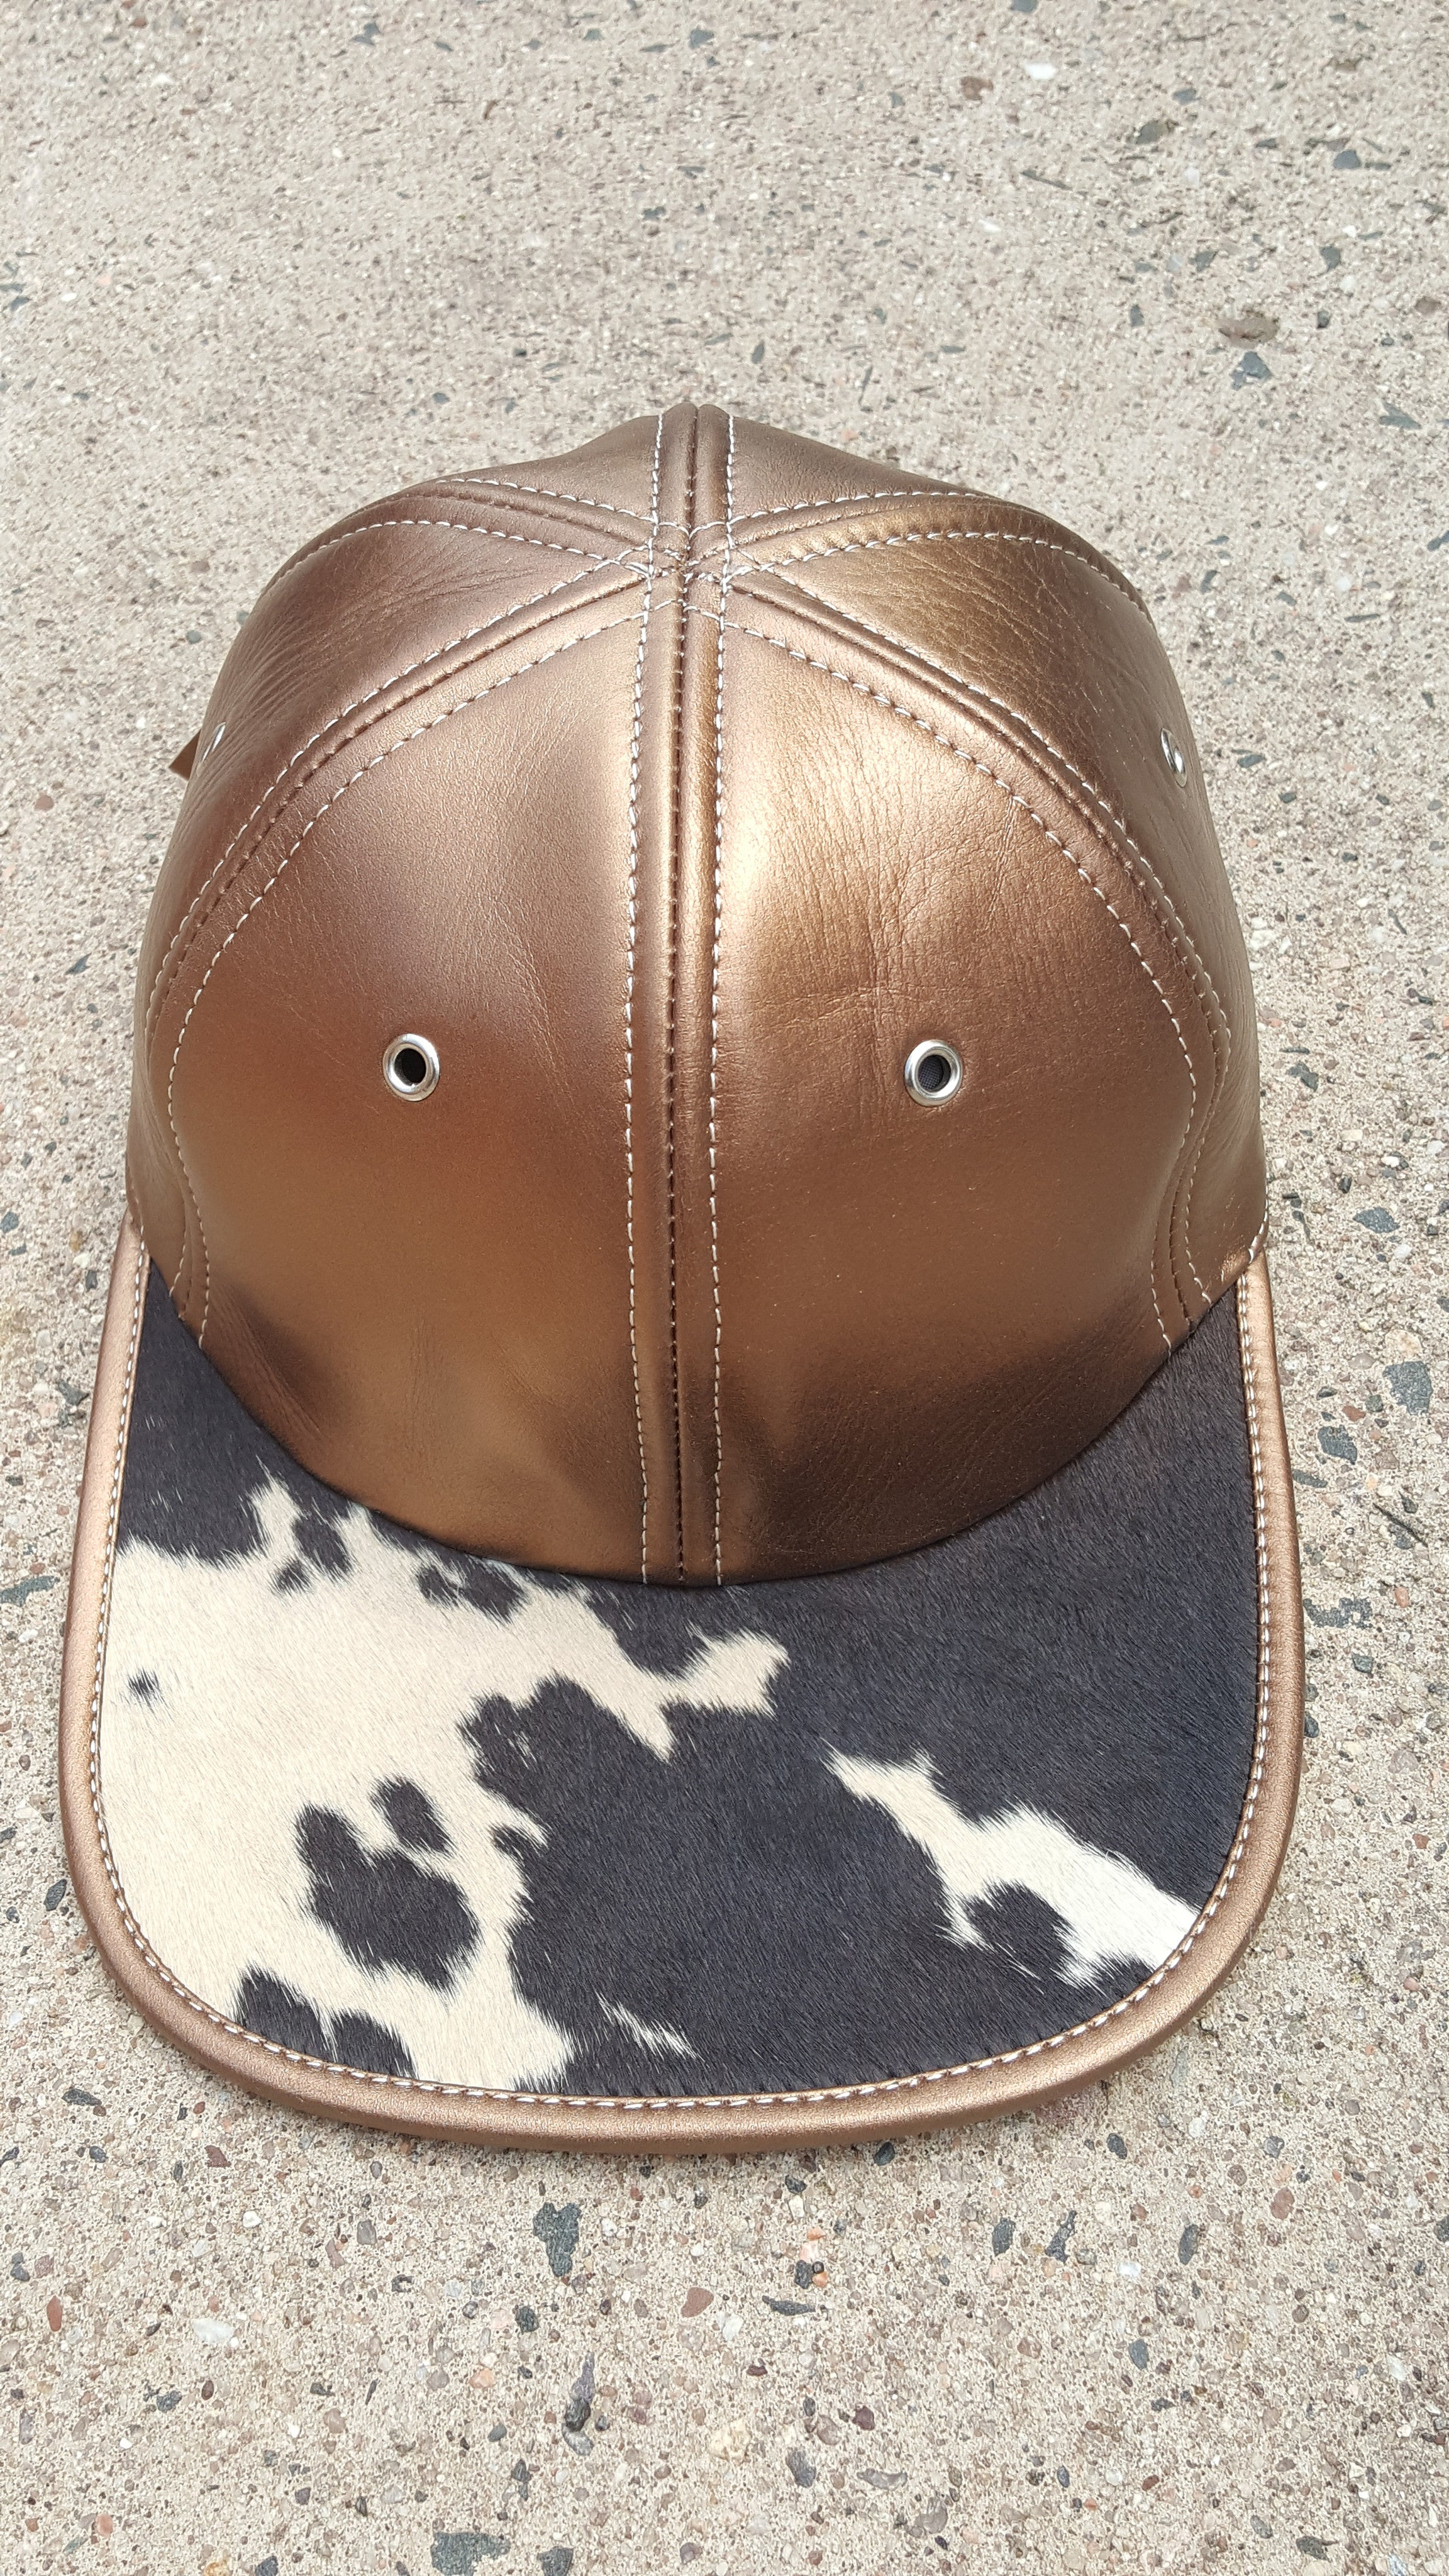 Reps&scales custom hats - Reps And Scales